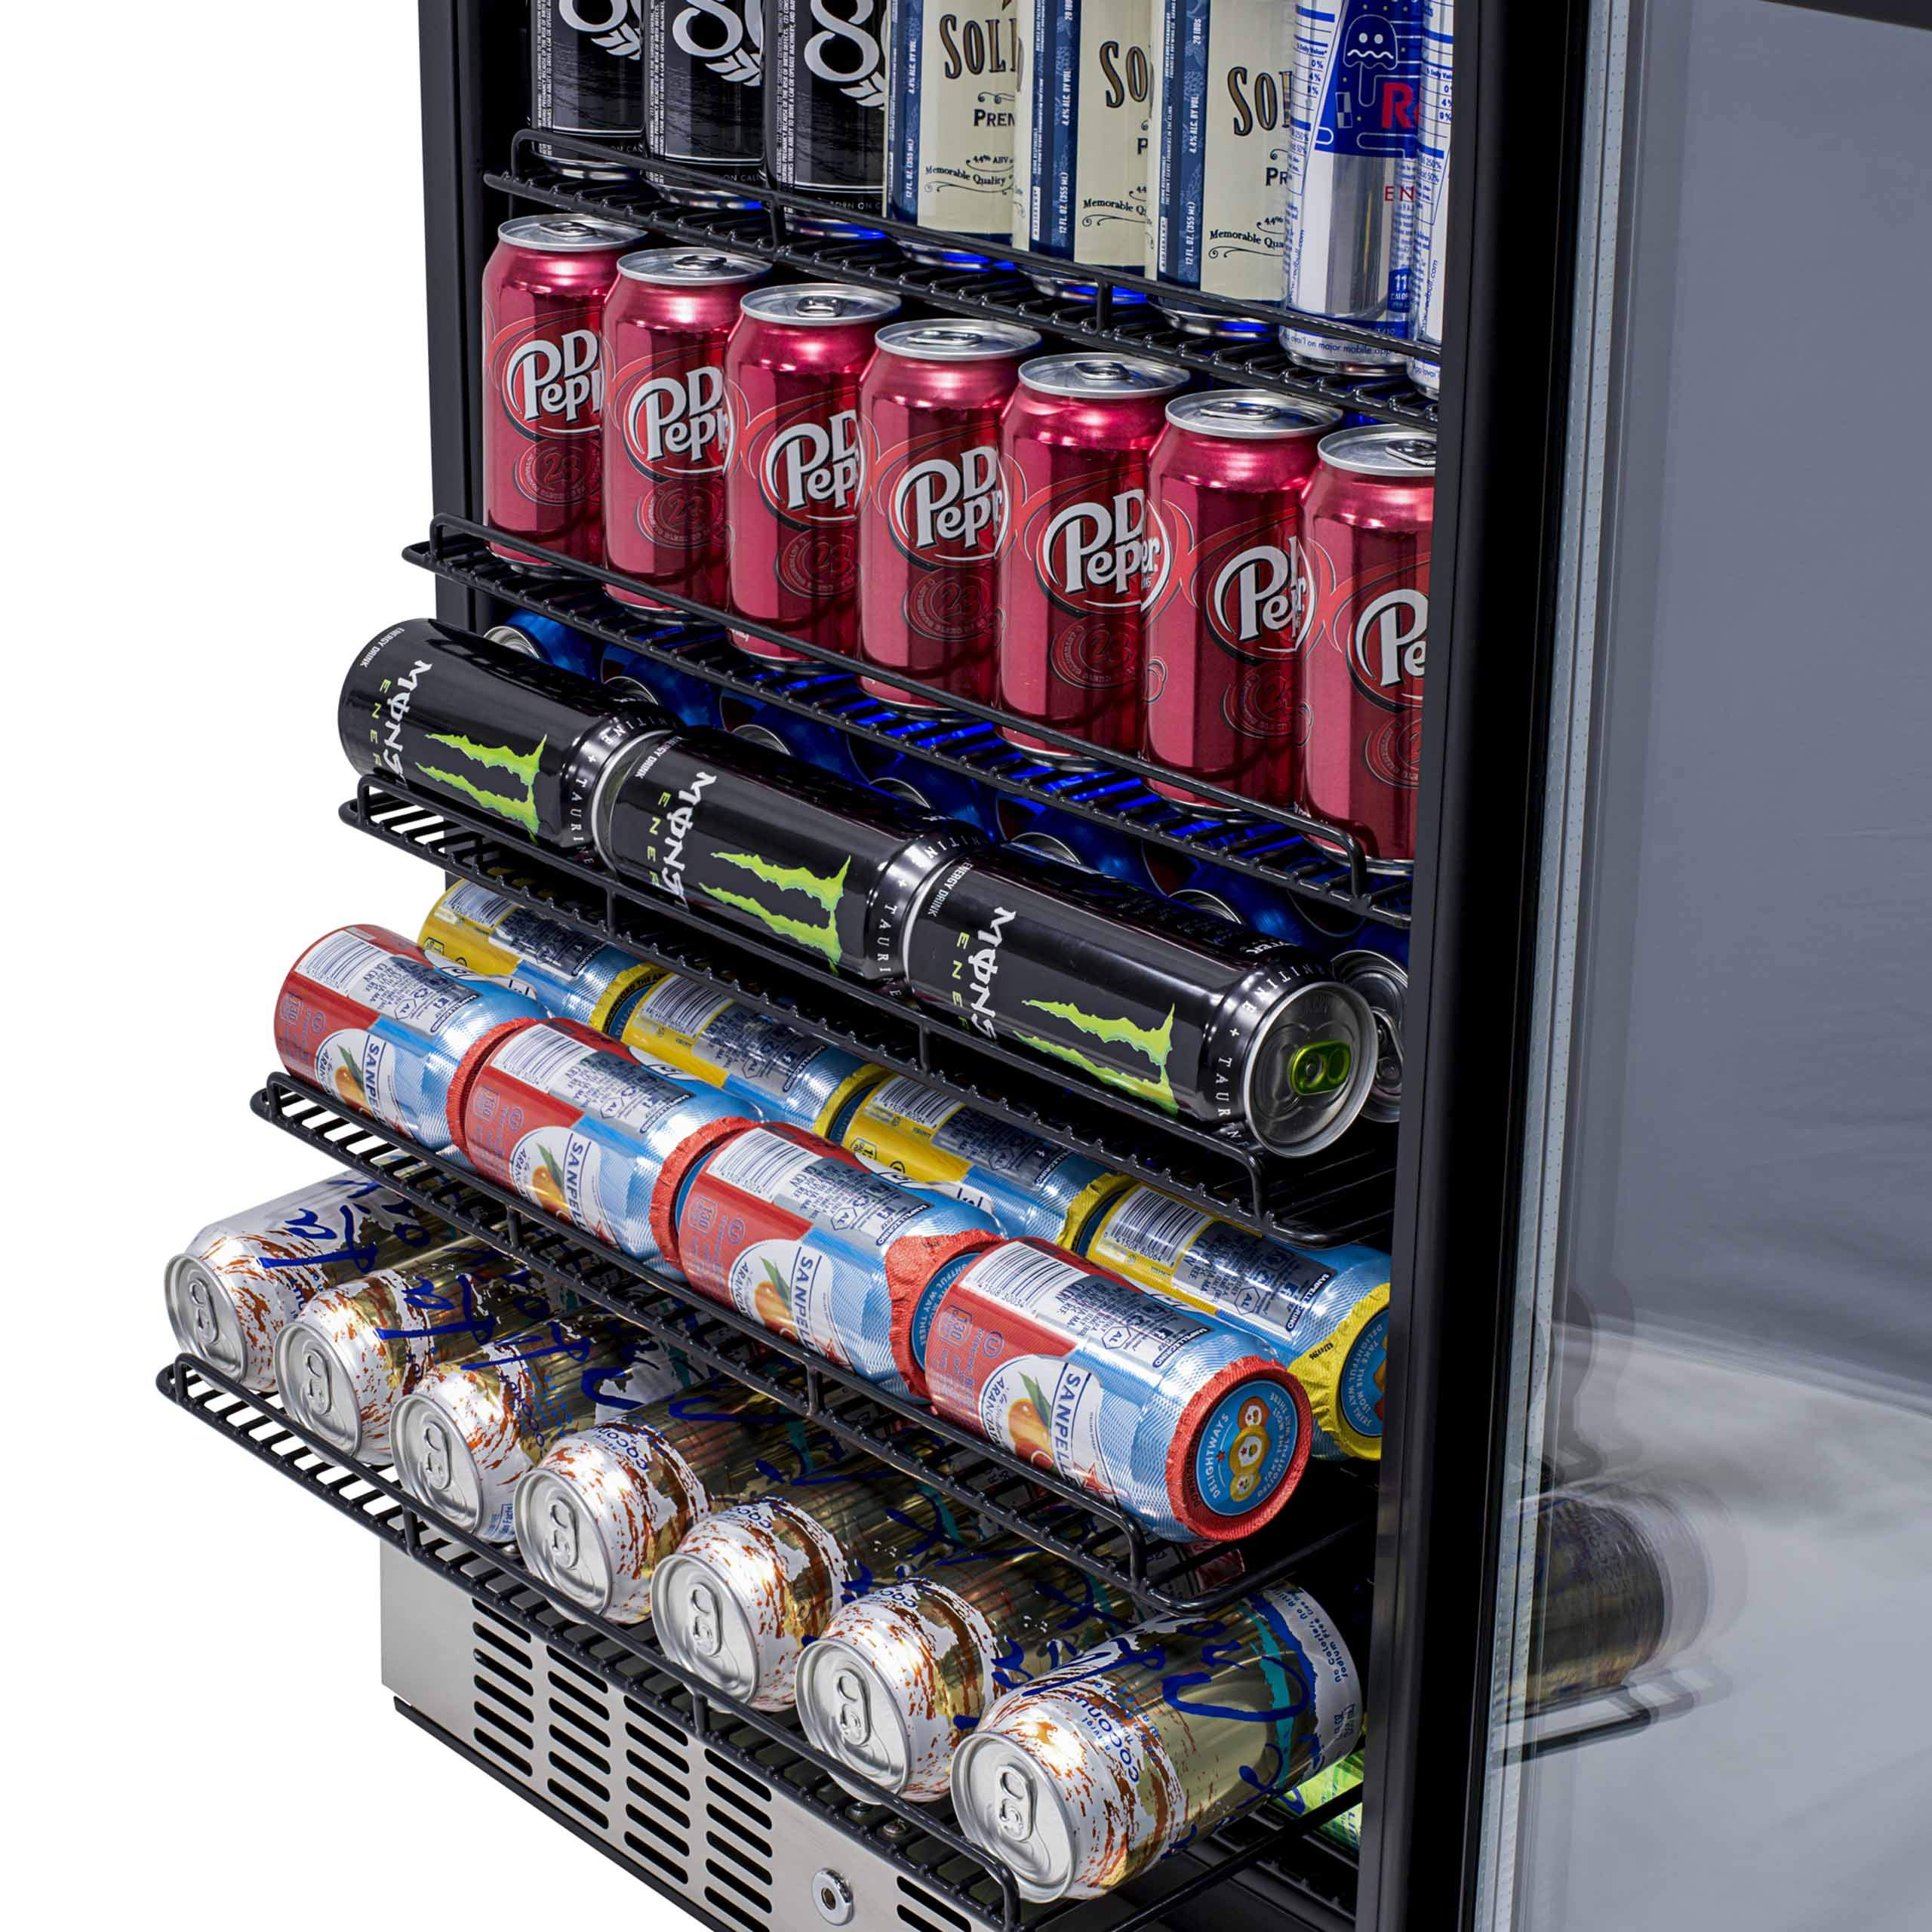 NewAir Built-In Beverage Cooler and Refrigerator, Stainless Steel Mini Fridge with Glass Door,  177 Can Capacity, ABR-1770 by NewAir (Image #8)